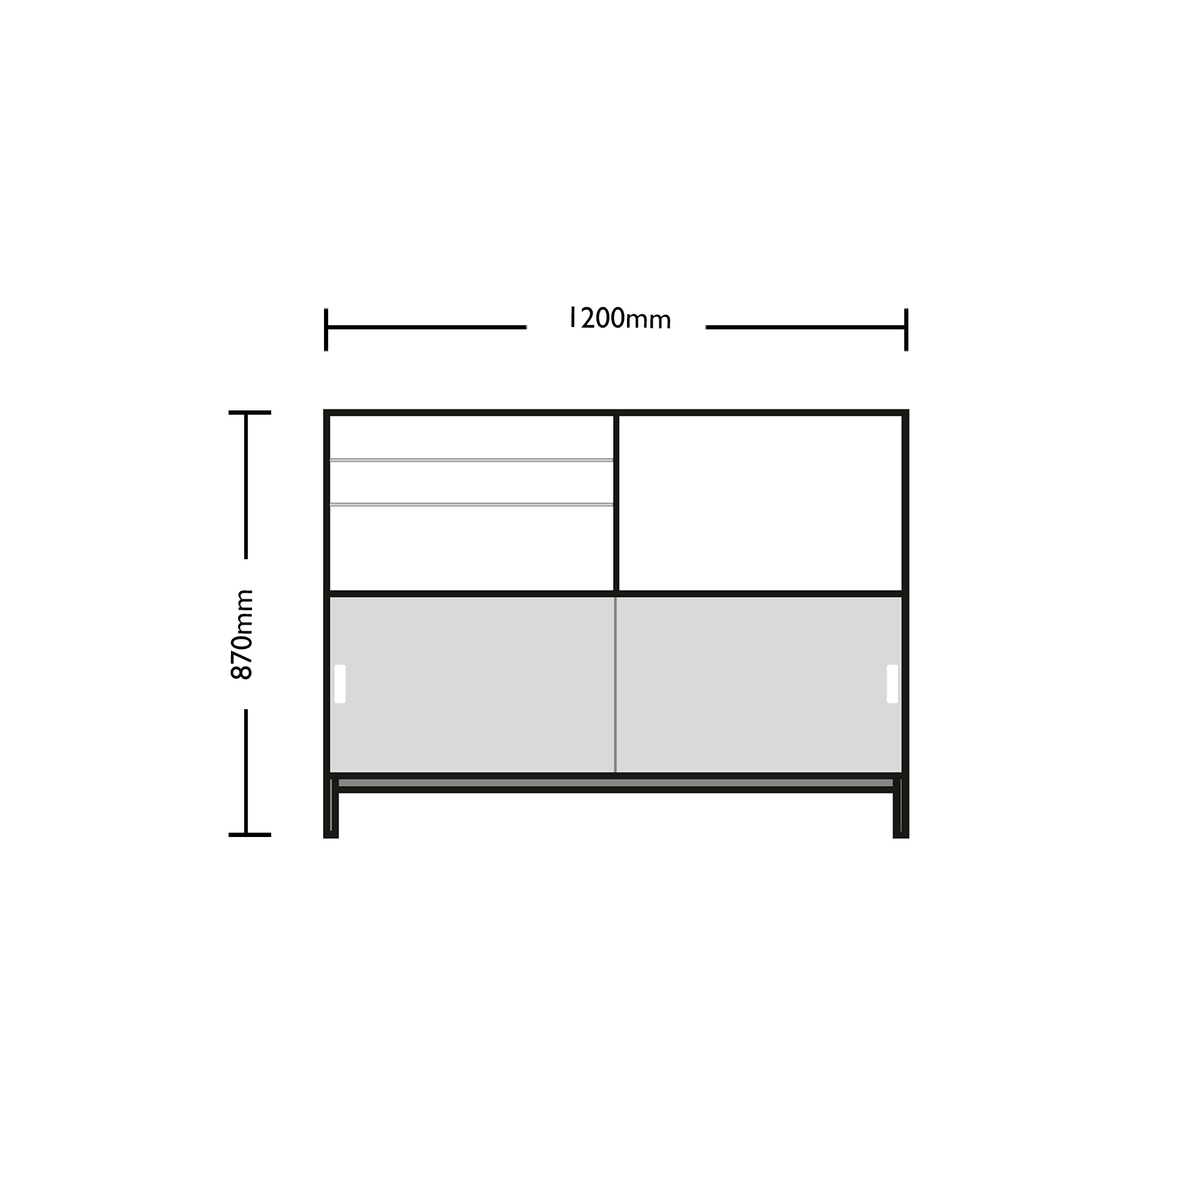 Dimensions for Edsbyn Office Neat Credenza 1200m